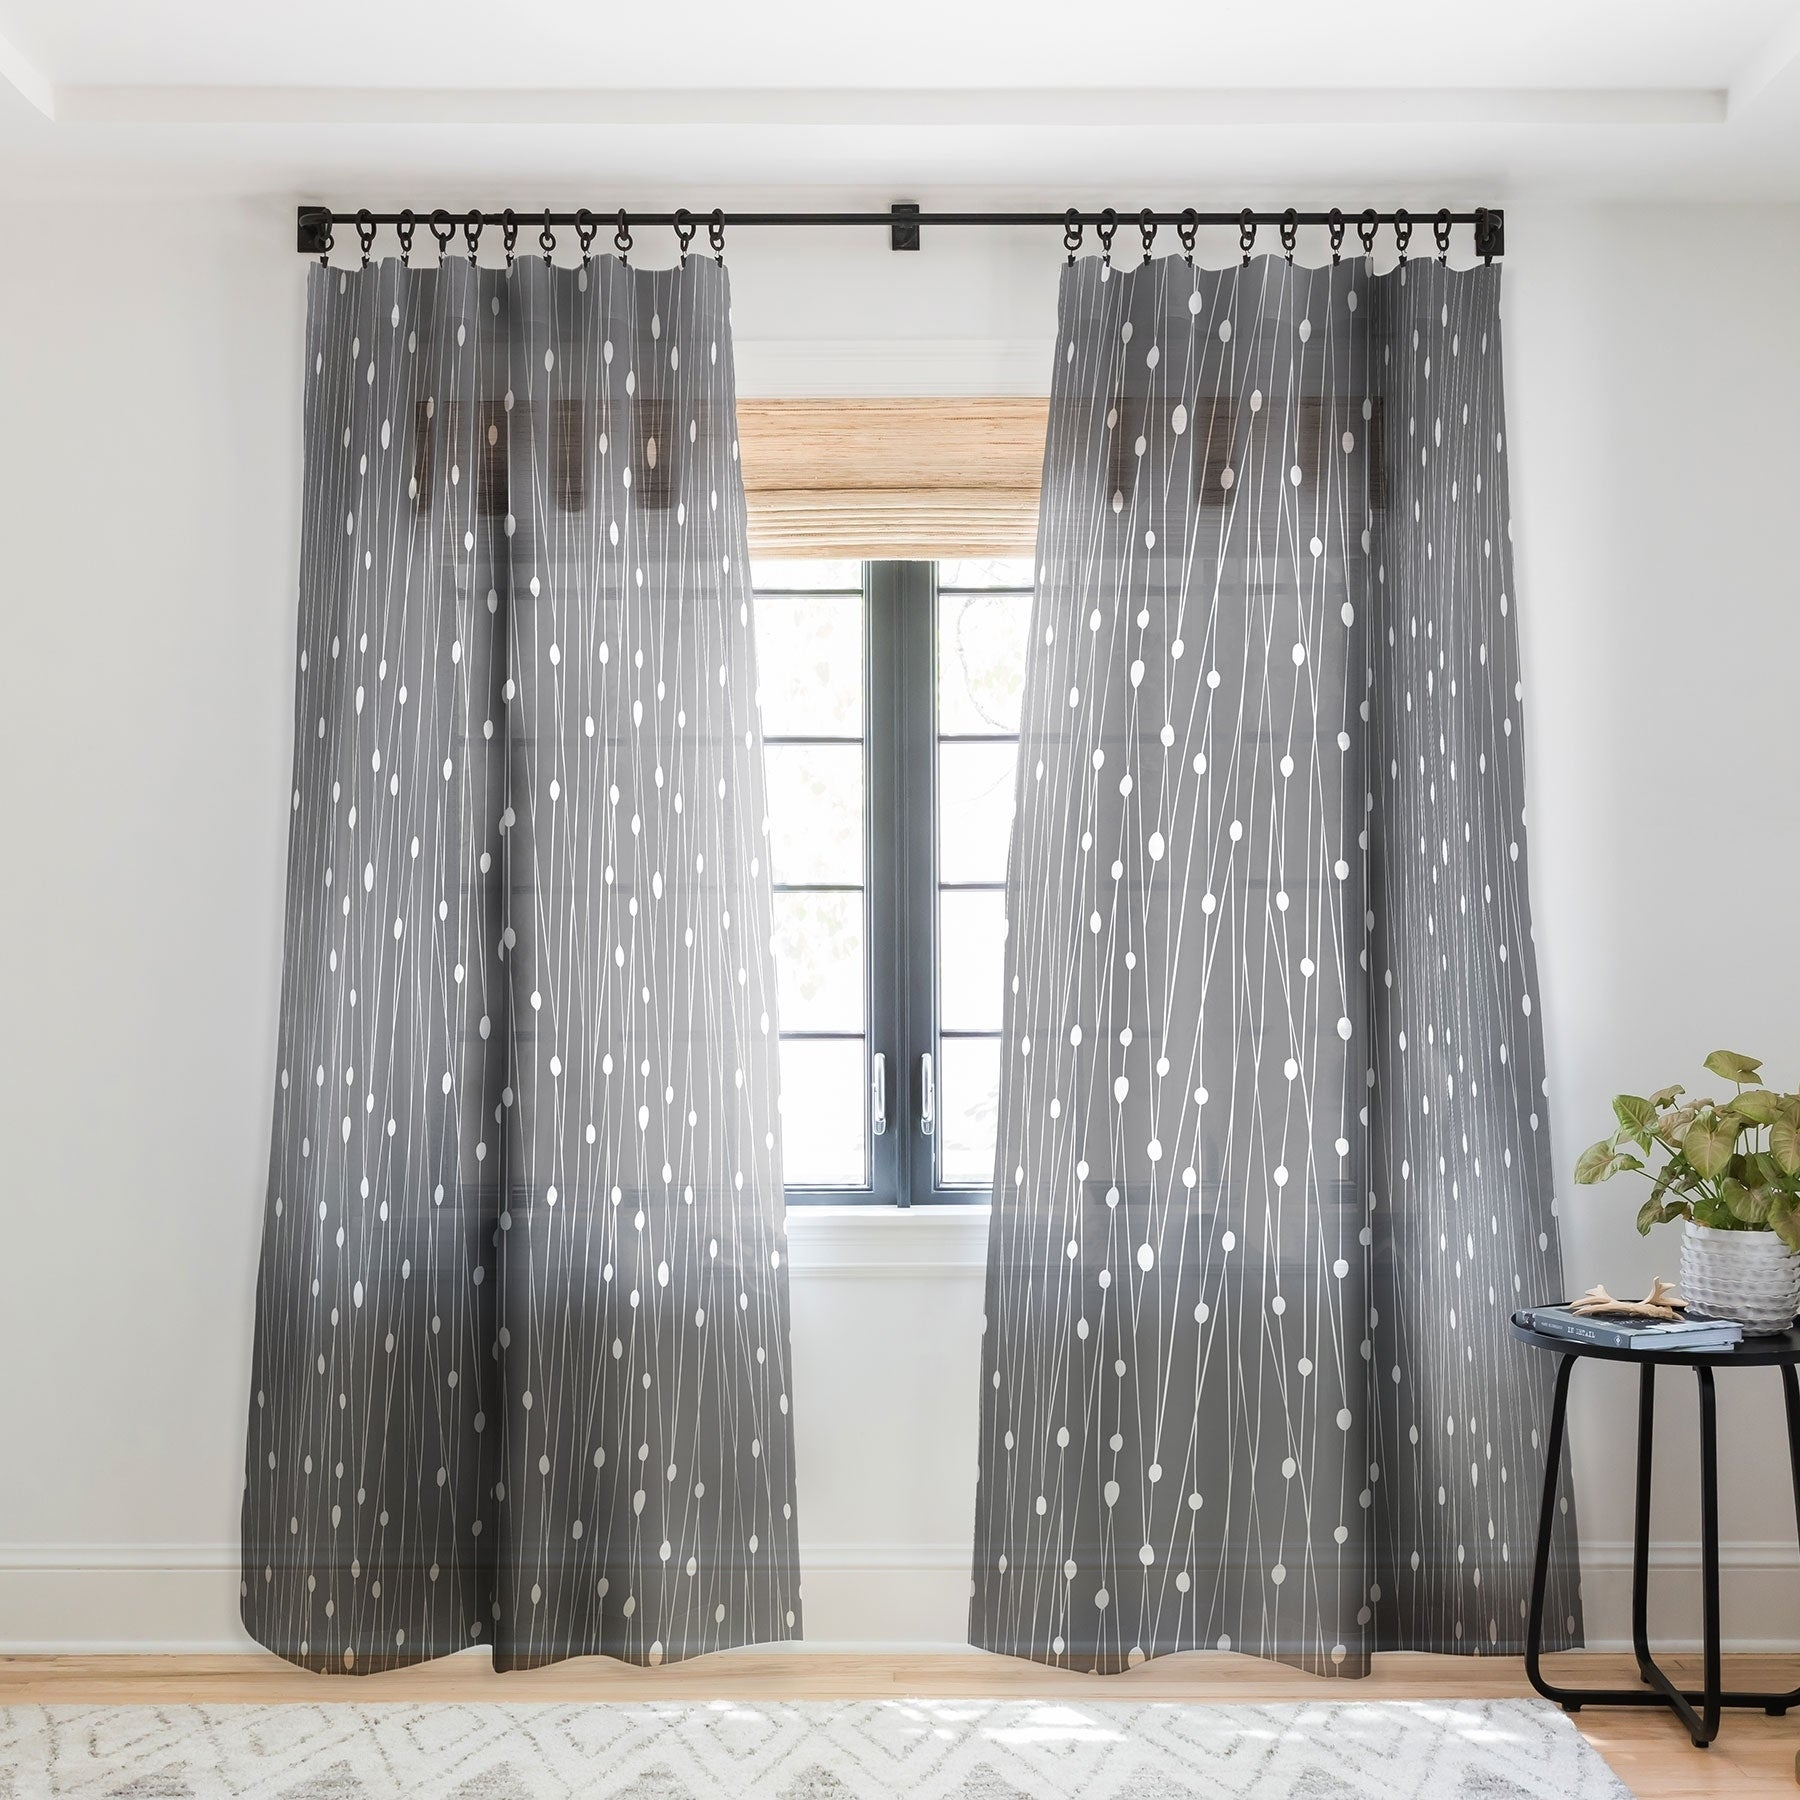 Heather Dutton Gray Entangled Single Panel Sheer Curtain 50 X 84 On Sale Overstock 22043471